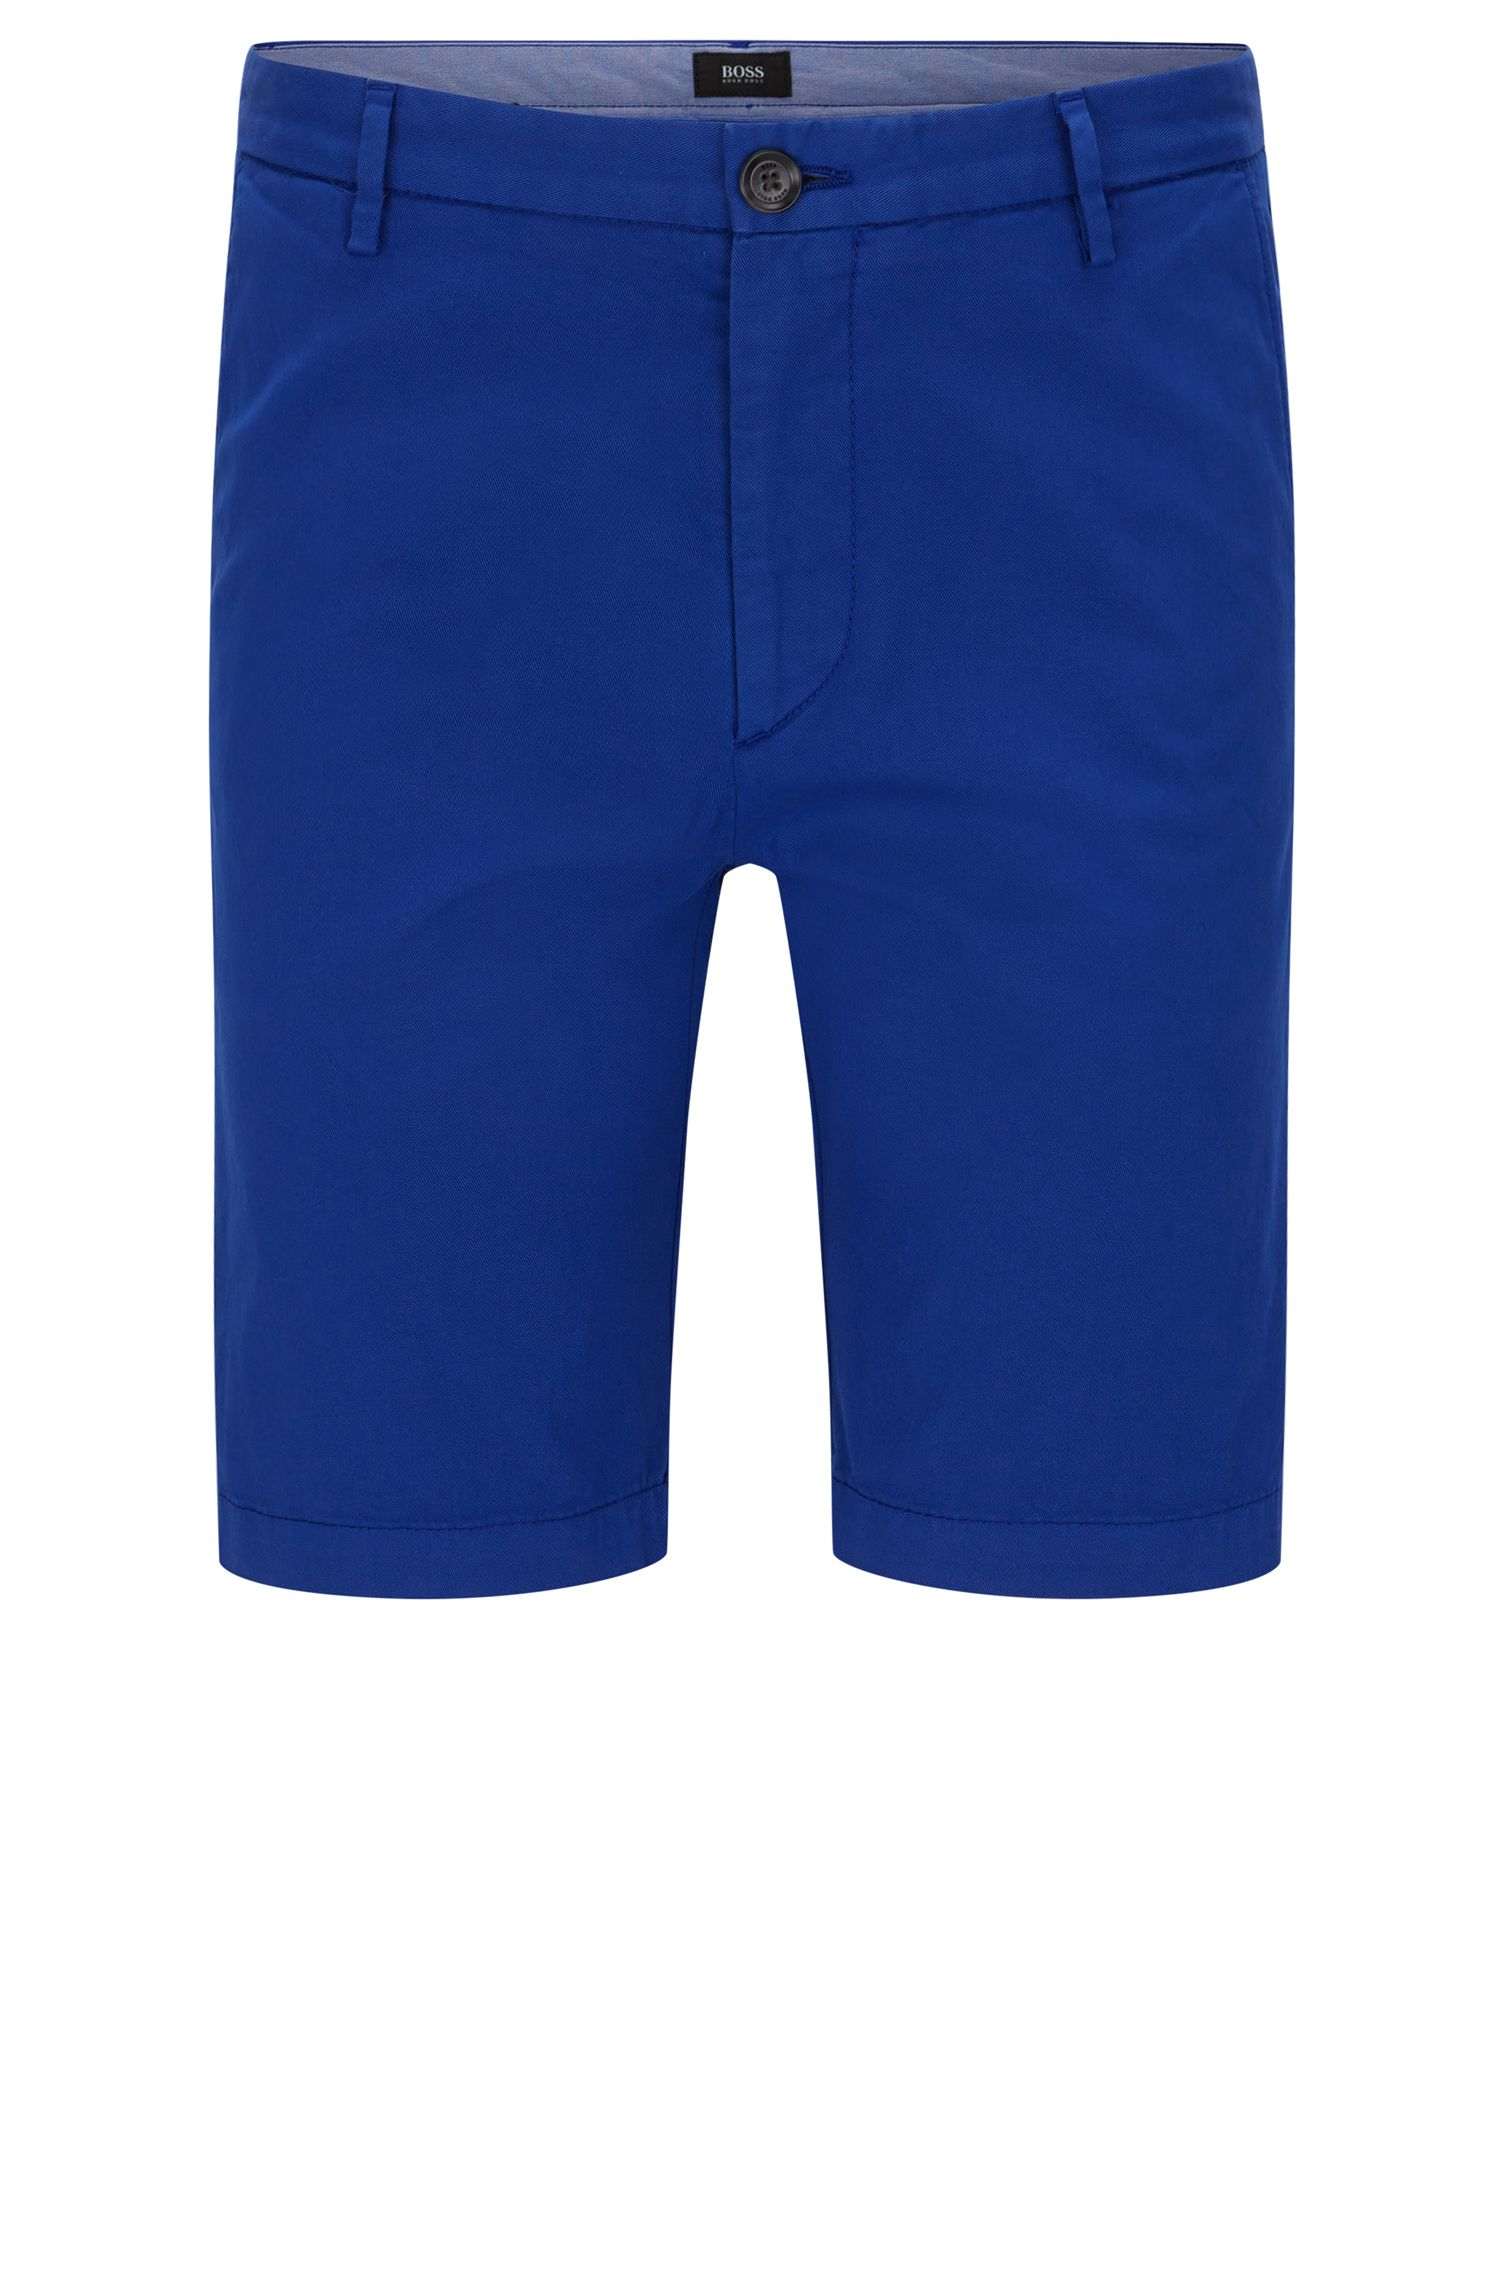 'Rice Short D' | Slim Fit, Stretch Cotton Chino Shorts